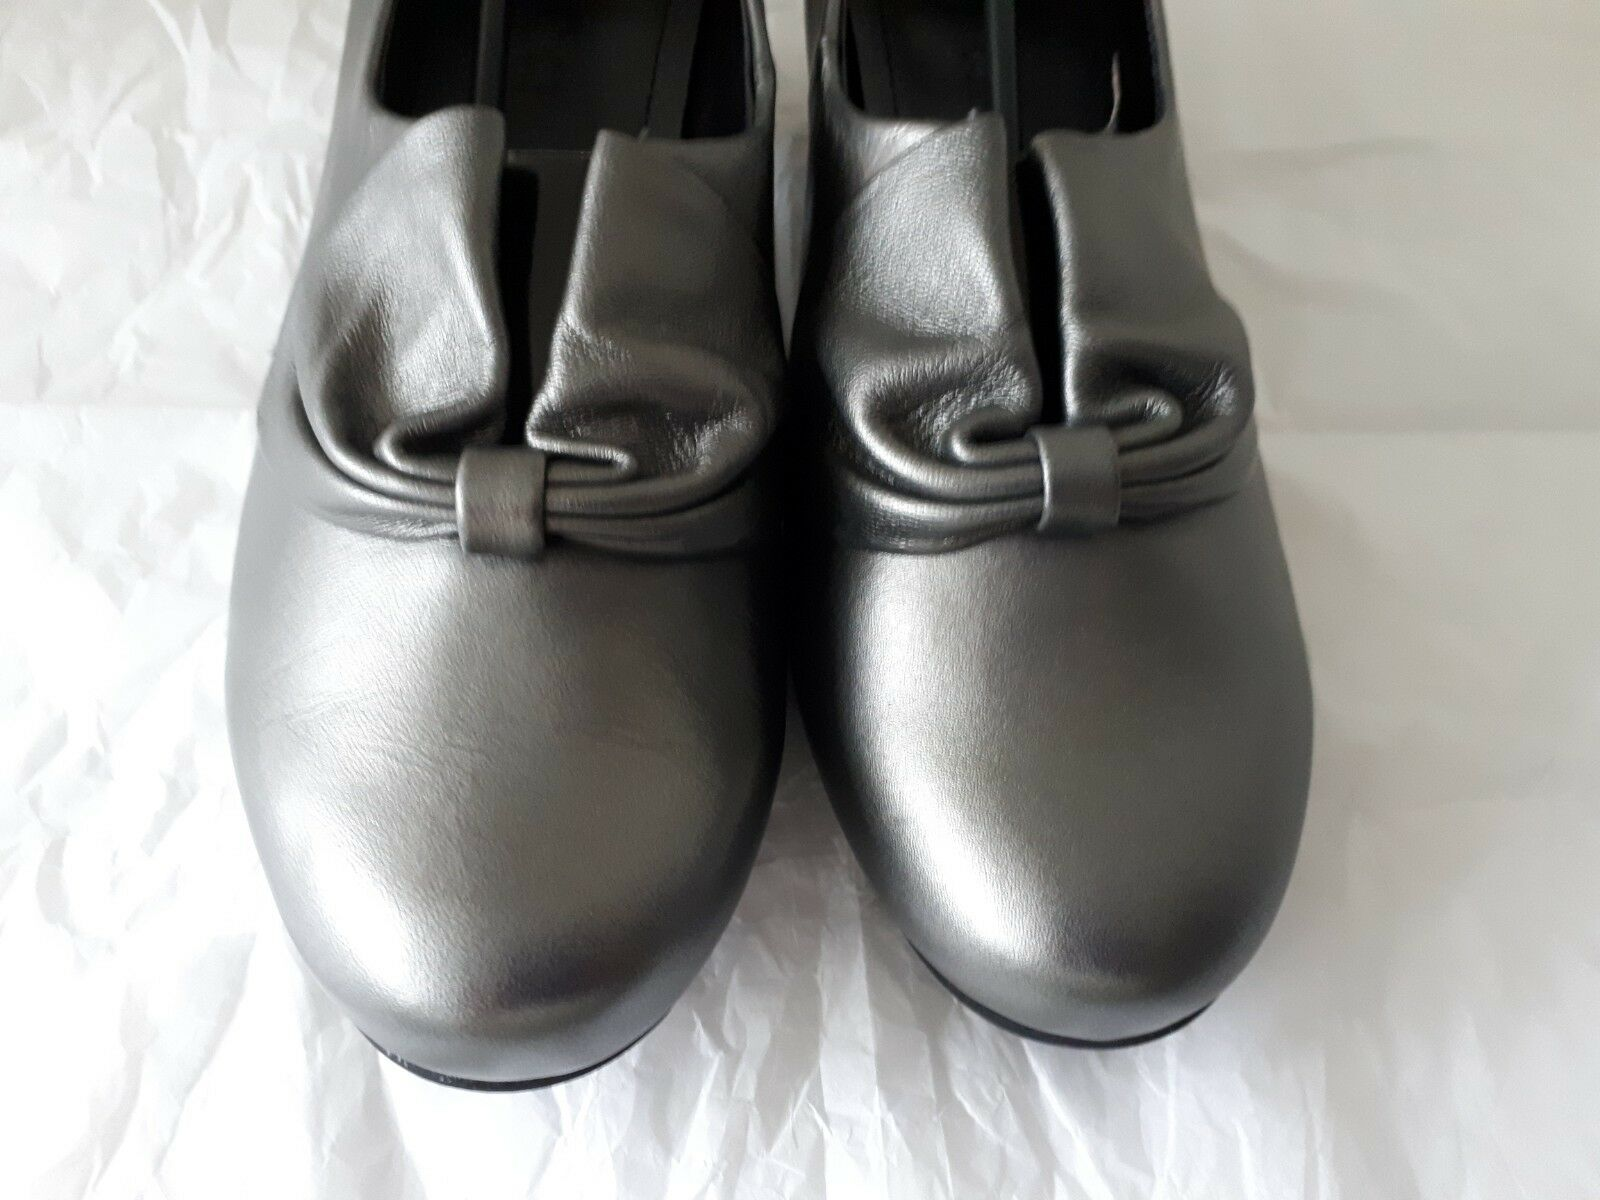 NEW HOTTER women LEATHER PEWTER COURT SHOES SIZE UK 6 6 6 BEST SELLERS cc93ff